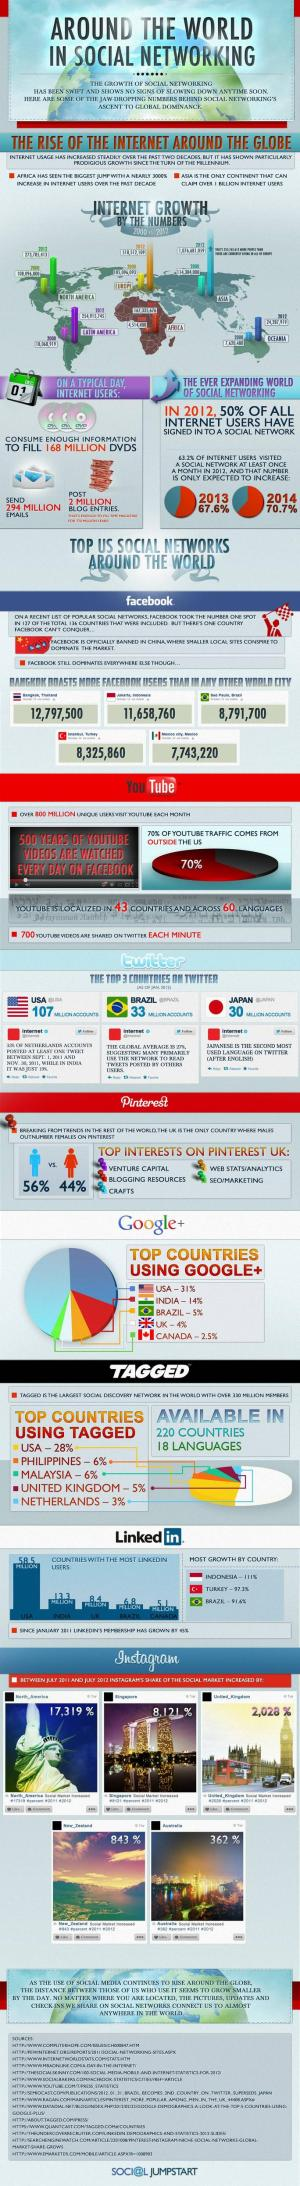 Around the world in social networking